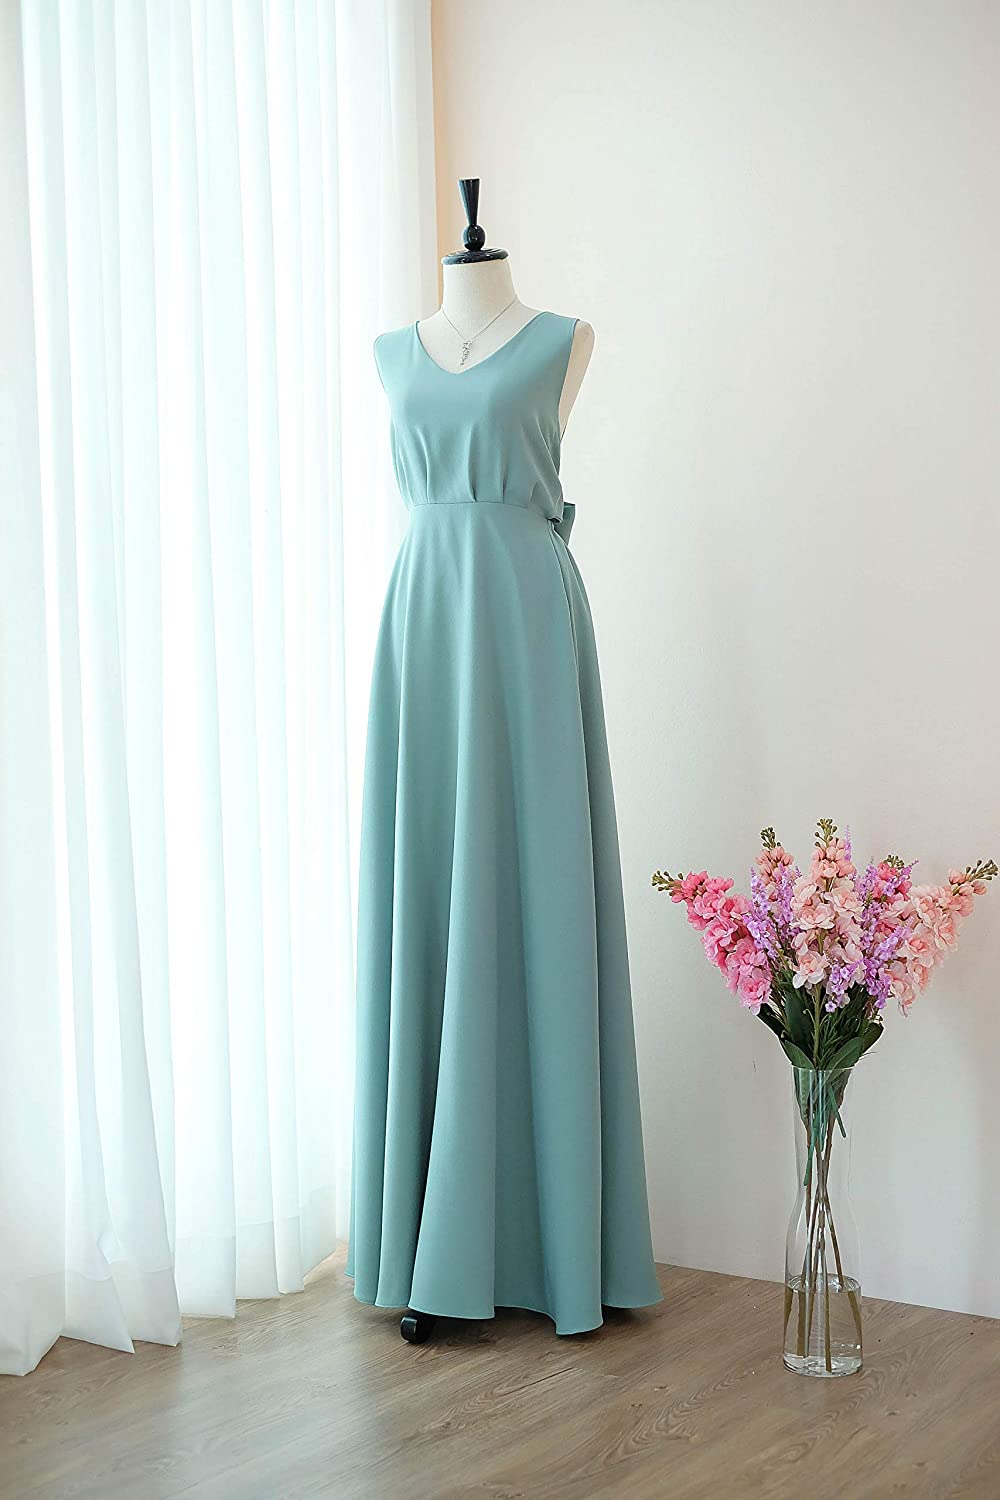 25a1e557cdd Amazon.com  Pale sage green bridesmaid dresses prom party wedding cocktail  evening gown  Handmade